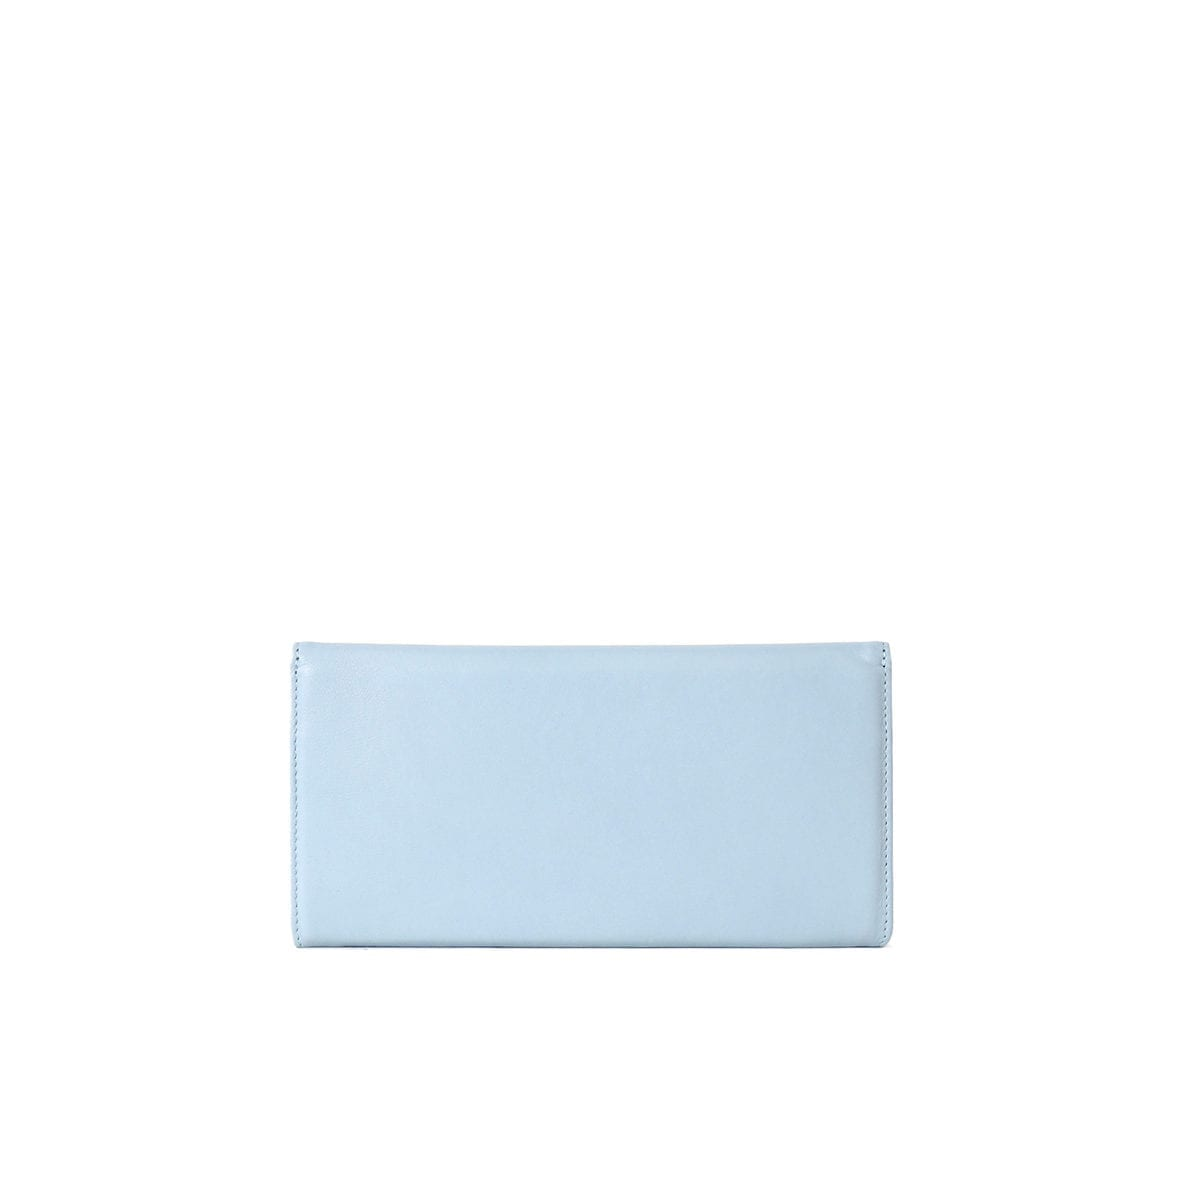 LUMI Talvikki Envelope Wallet in pretty baby blue and baby pink combo. This wallet is perfect for daily use to safe-keep your cards and cash. Or use it as a clutch with your evening wear. The wallet is handmade from lovely and soft sheep napa leather, which makes it beautiful to hold in your hand.